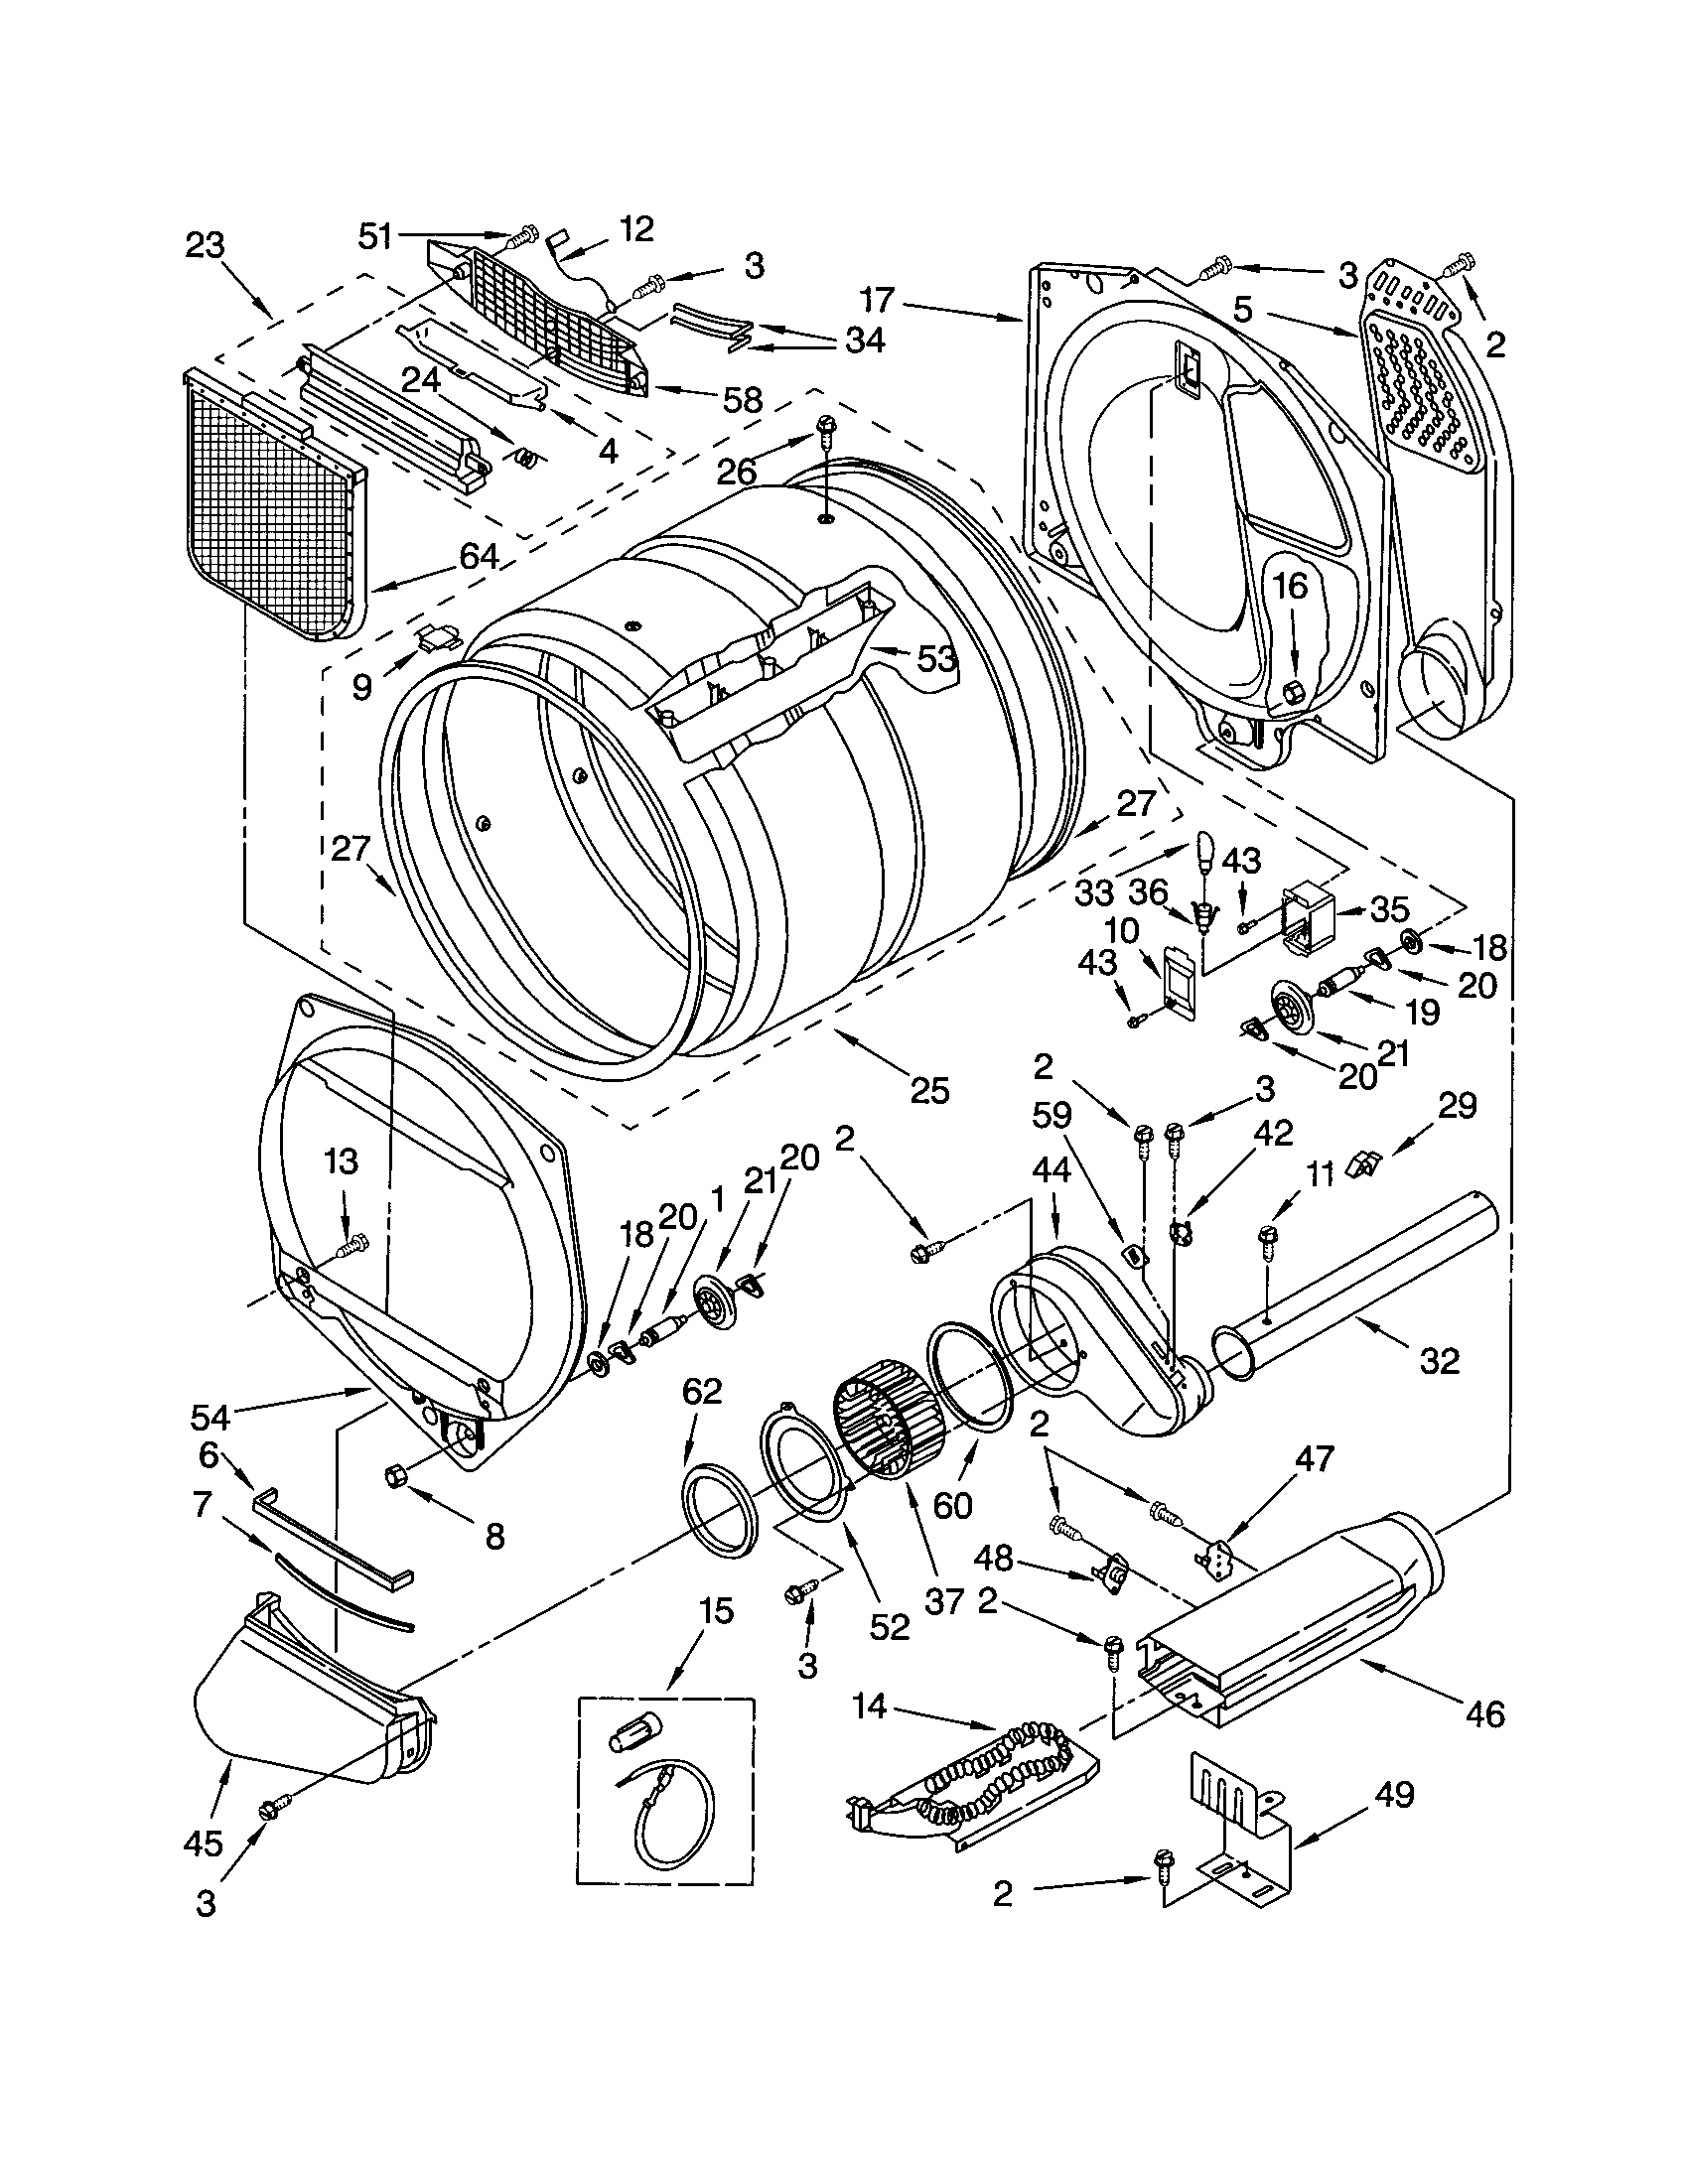 Admiral Dryer Wiring Diagram : 28 Wiring Diagram Images